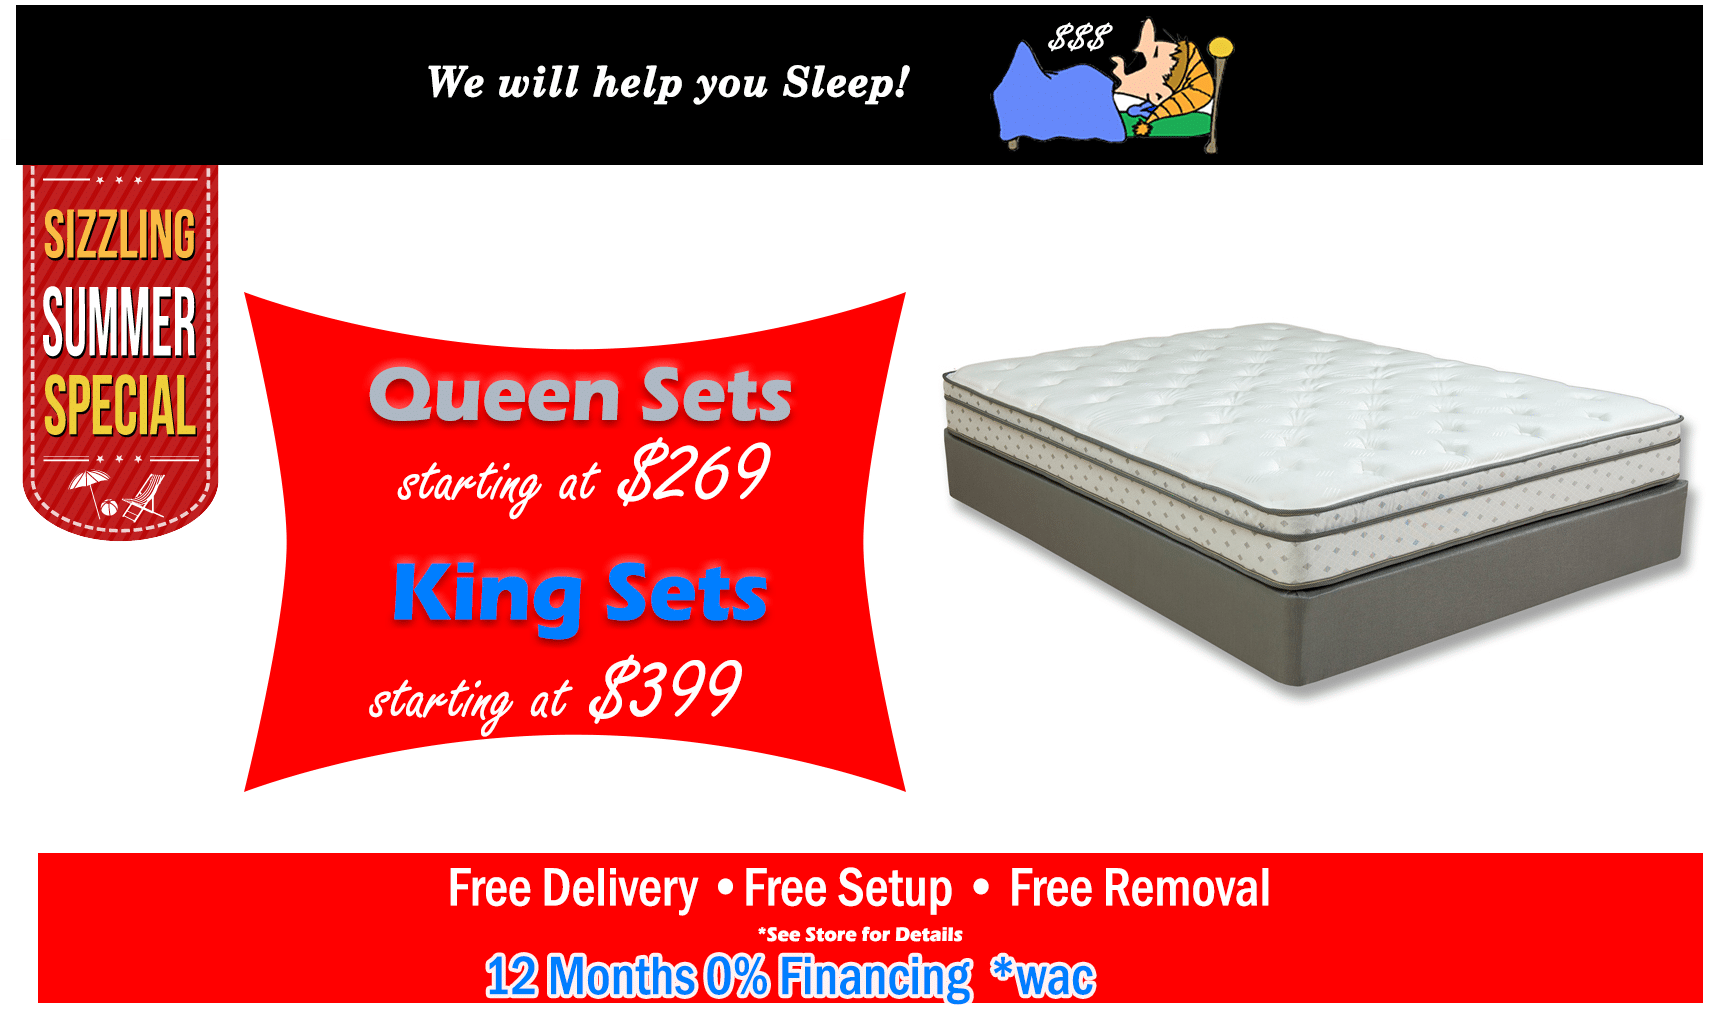 King Mattress Sale Image Of Unique Headboards King Size Bed King Headboards Full Image For